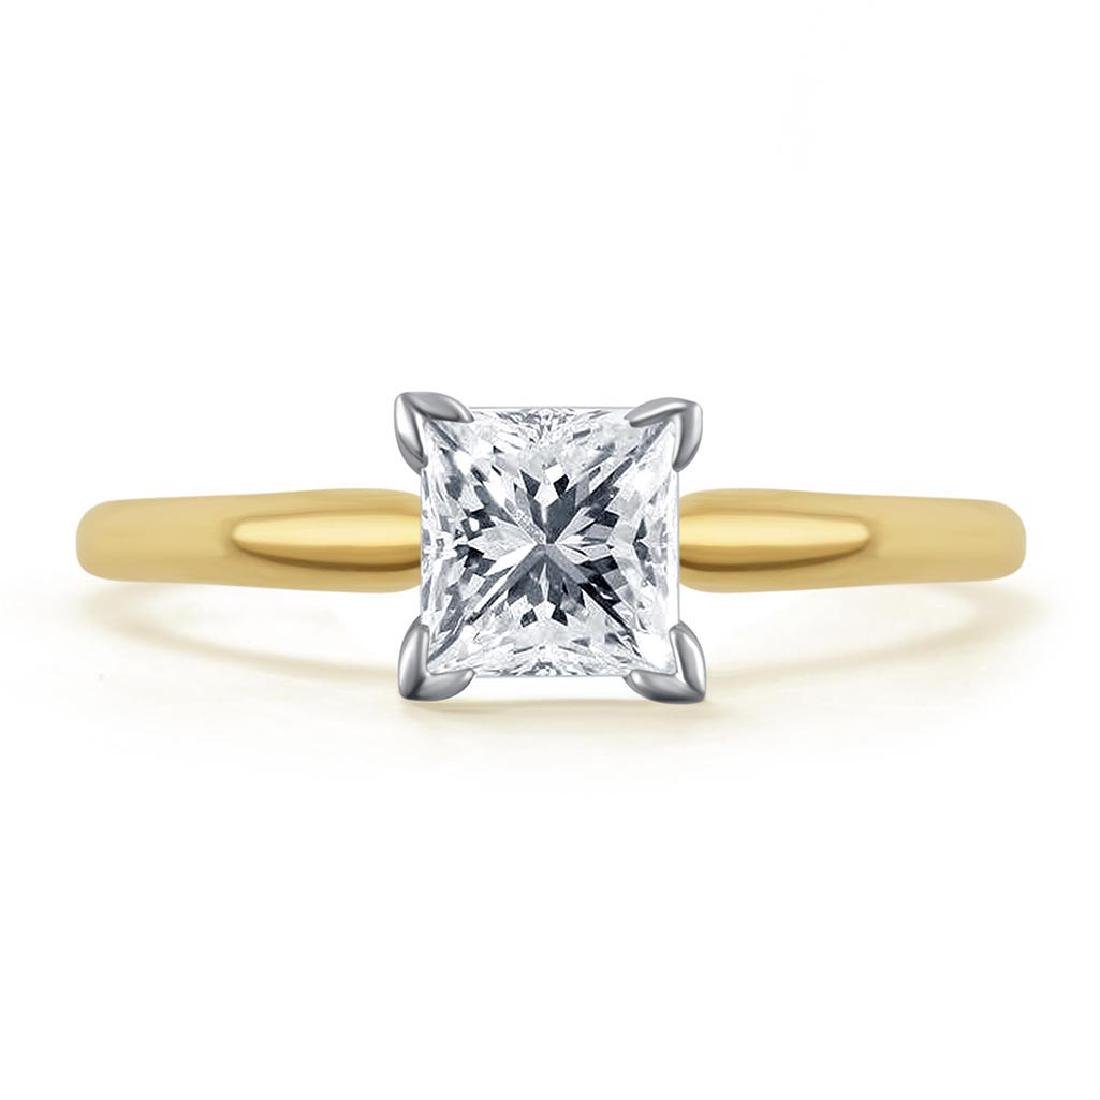 CERTIFIED 1.01 CTW PRINCESS K/SI2 SOLITAIRE RING IN 14K